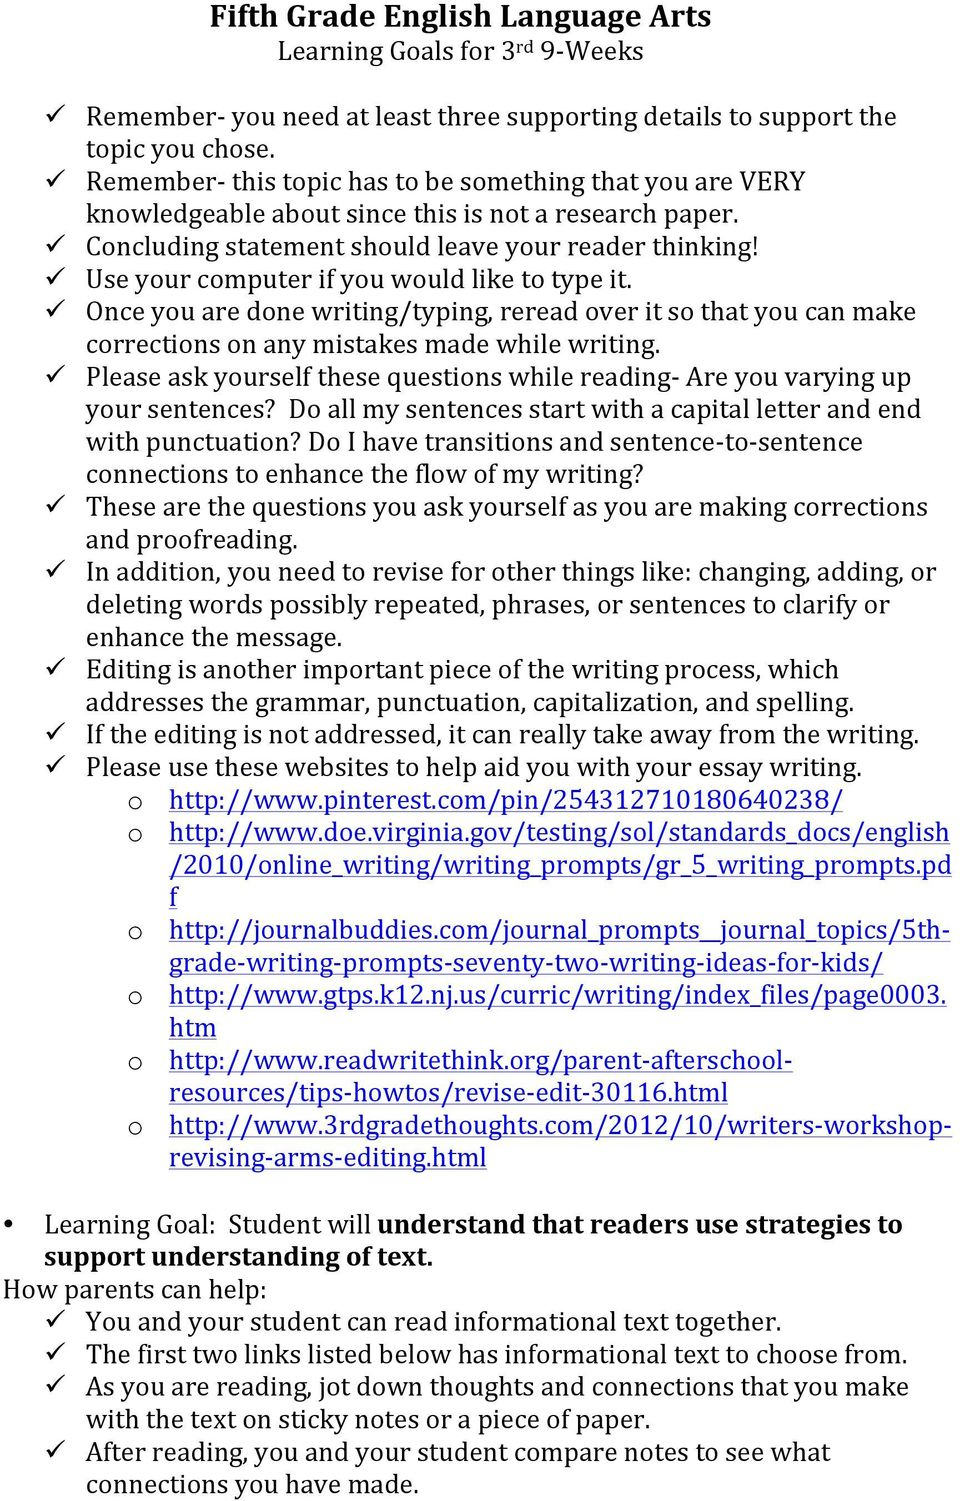 Once you are done writing/typing, reread over it so that you can make corrections on any mistakes made while writing.